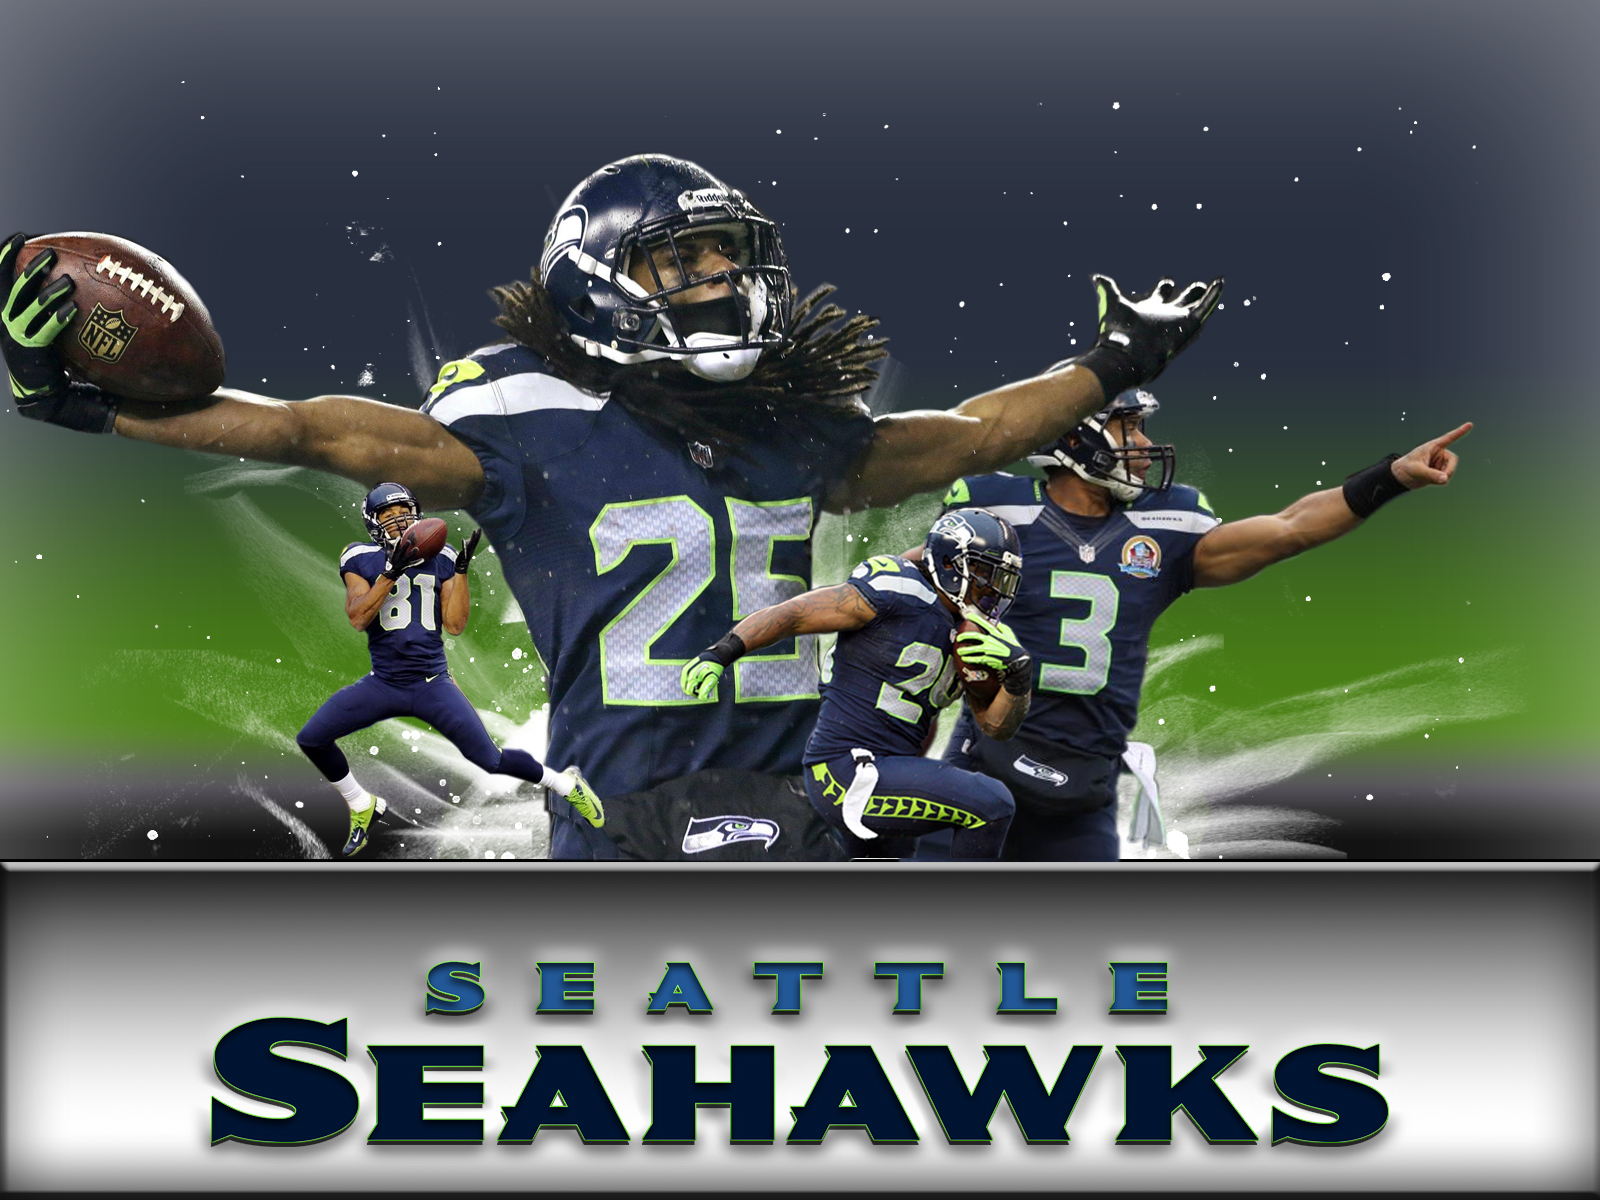 Seattle Seahawks Computer Wallpapers, Desktop Backgrounds 1600x1200